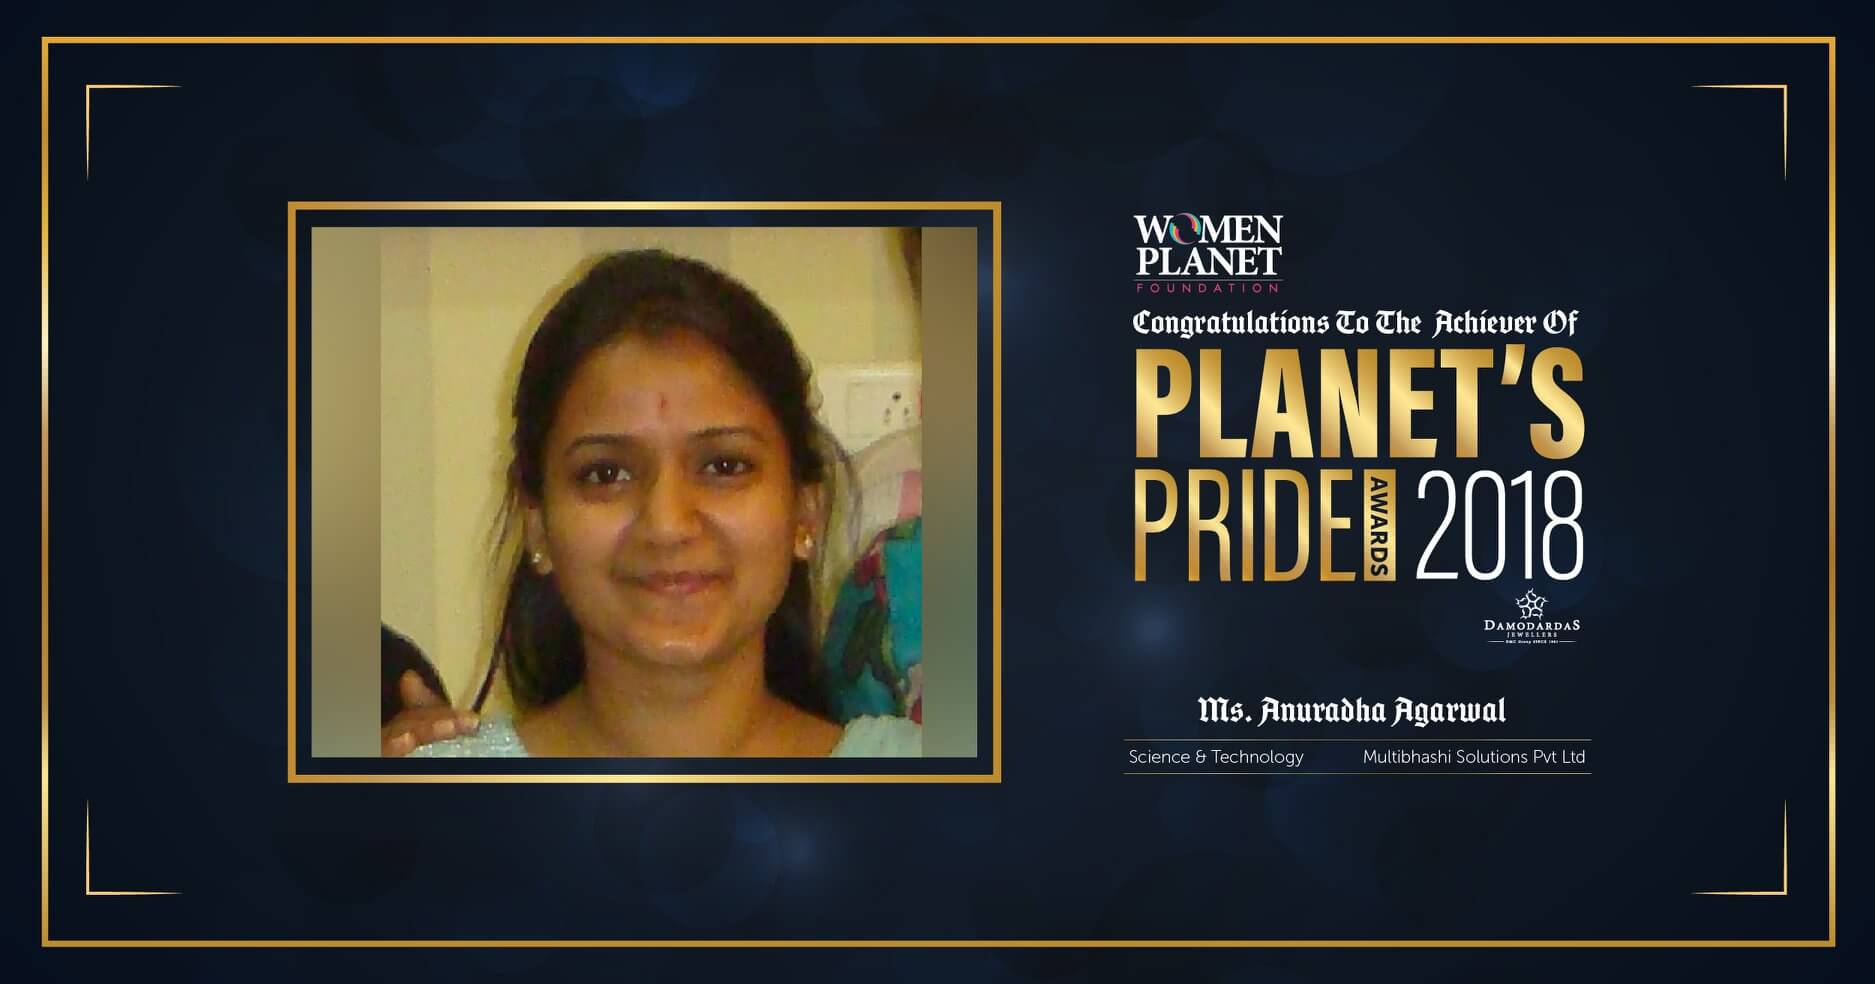 women planet foundation award